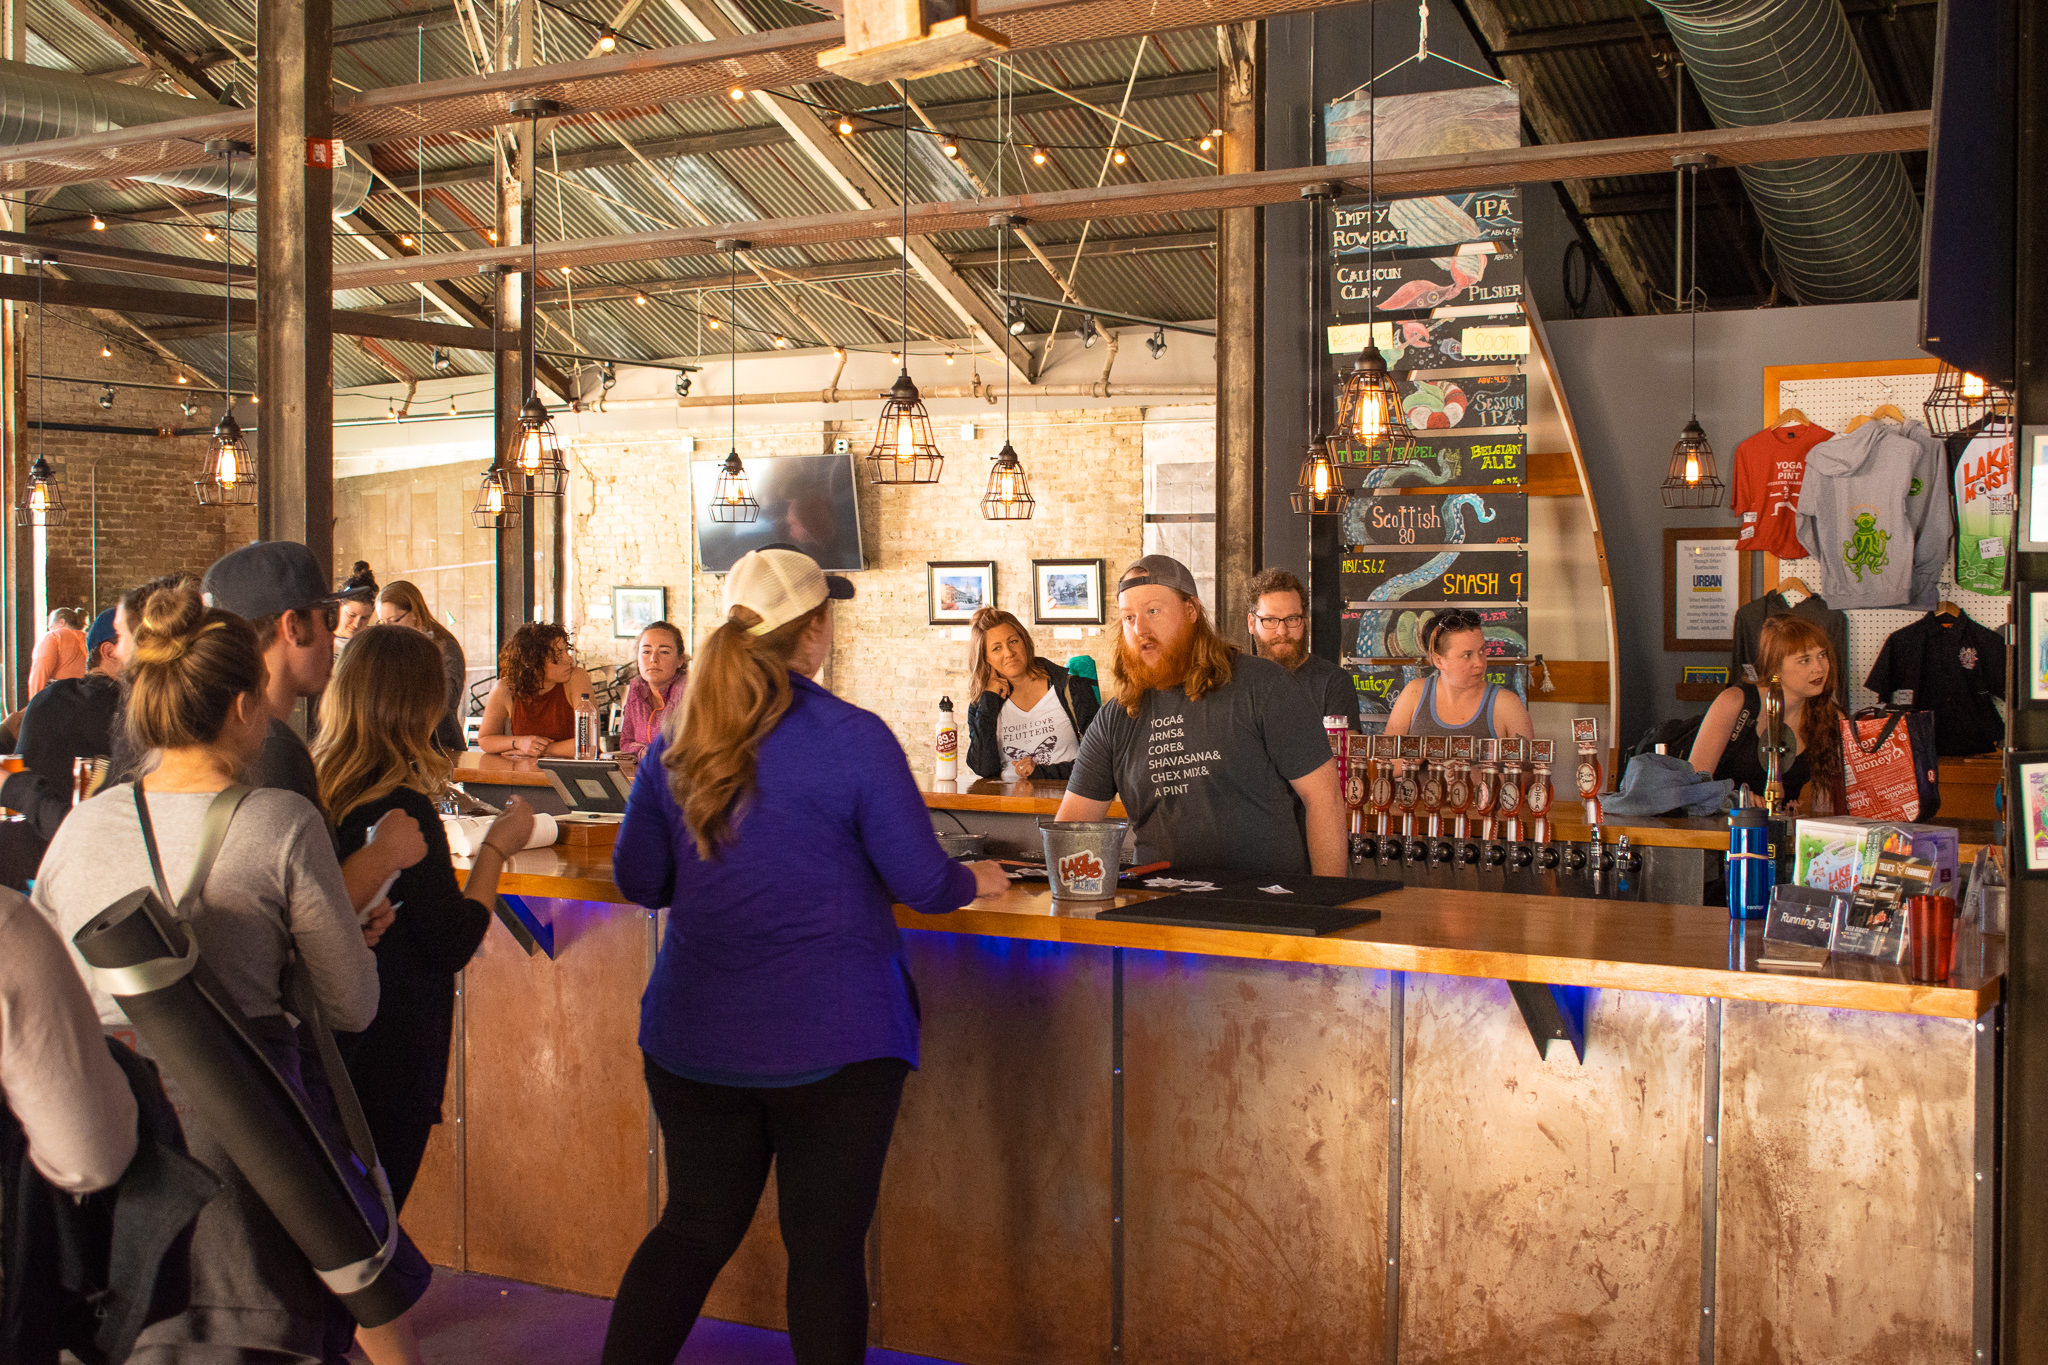 uprooted-traveler-yoga-and-pint-vegan-lakeside-brewing-what-to-do-minneapolis-st-paul.jpg